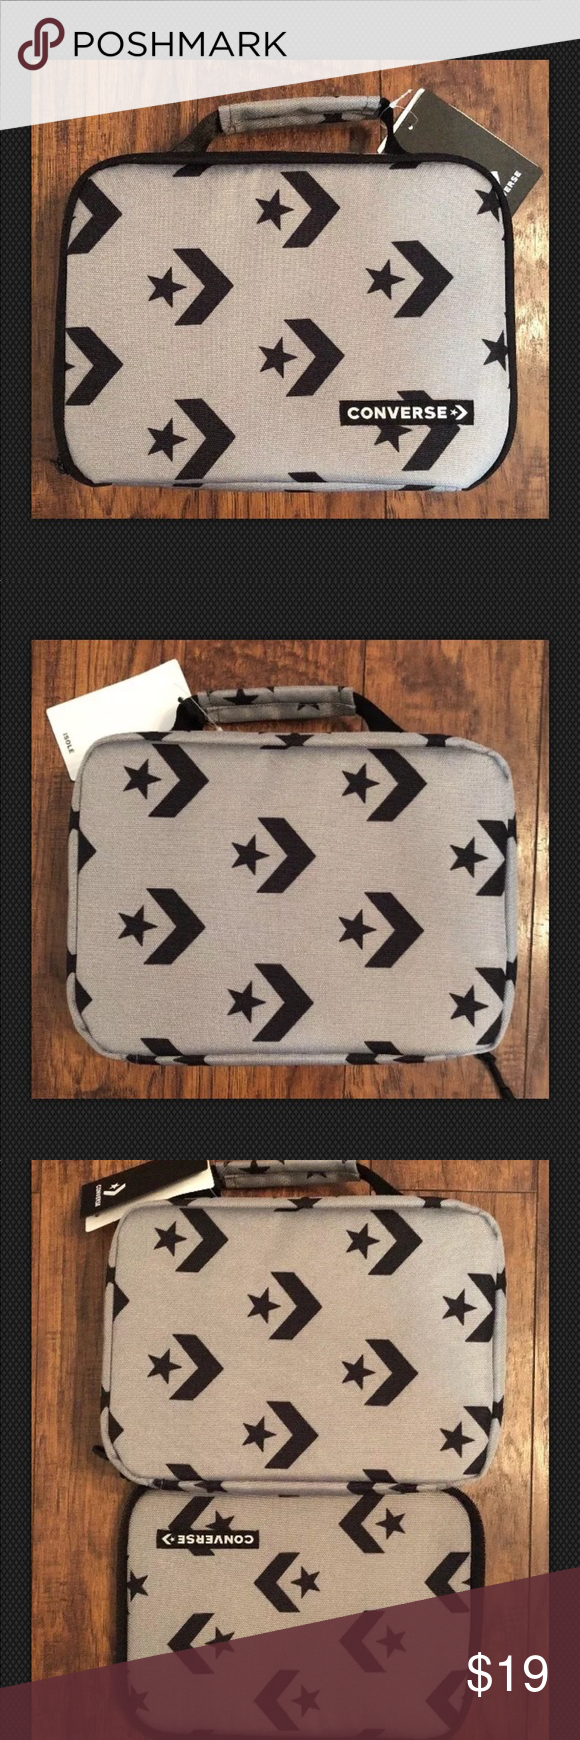 CONVERSE Soft Lunch Kit Insulated Lunch Bag Converse Awesome Soft Lunch Kit  Back Insulated Cool Lunch Box Bag New With Tags Converse Other 31636368b4299